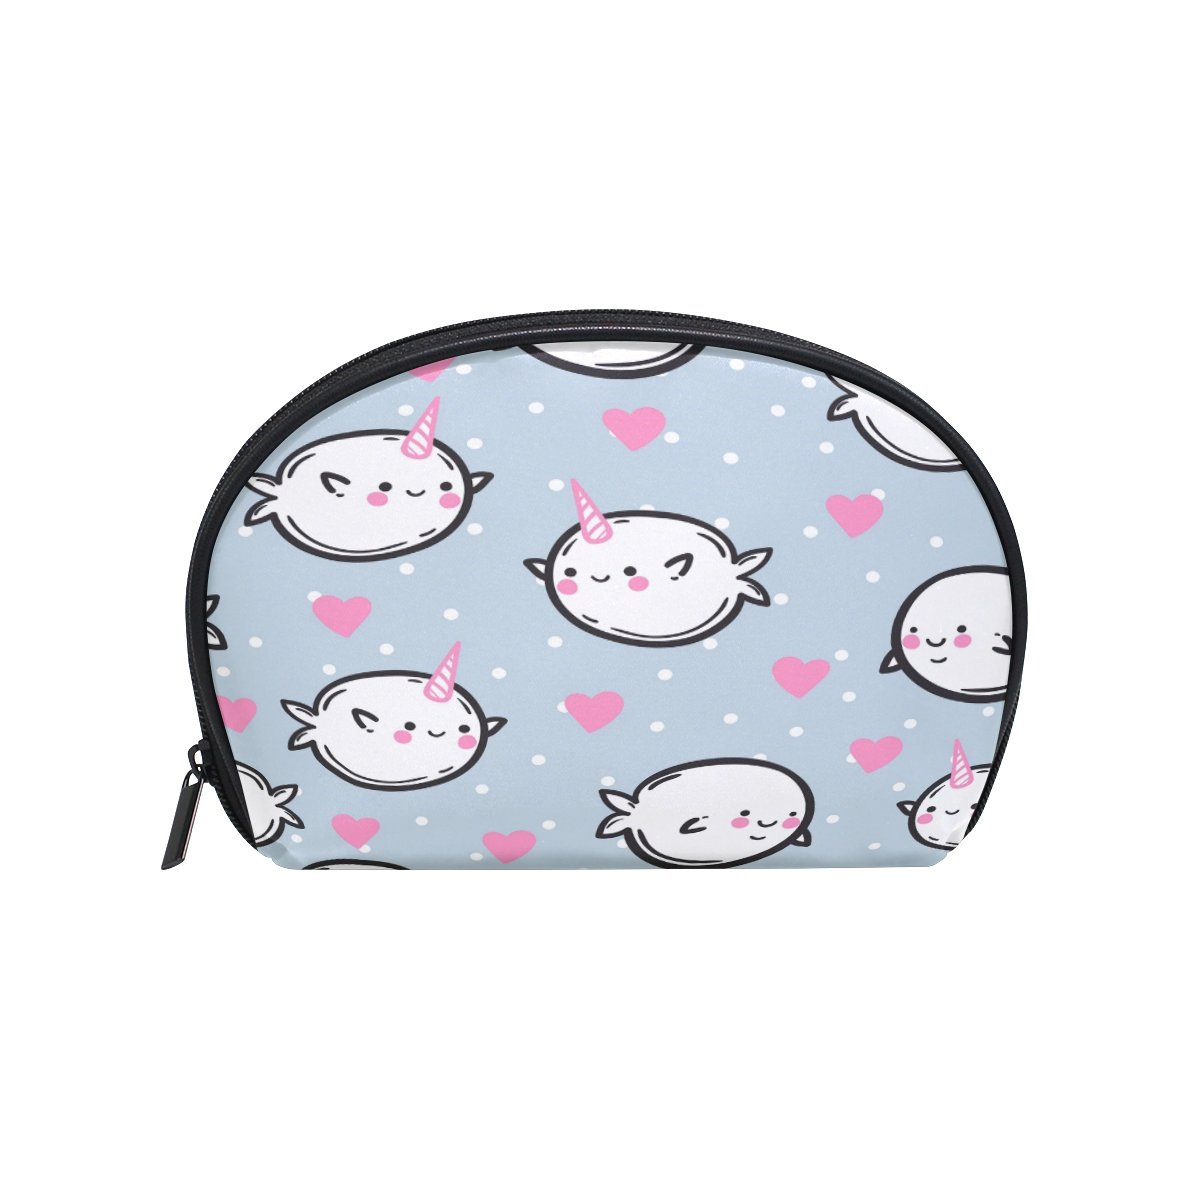 ALAZA Unicorn Whale Half Moon Cosmetic Makeup Toiletry Bag Pouch Travel Handy Purse Organizer Bag for Women Girls